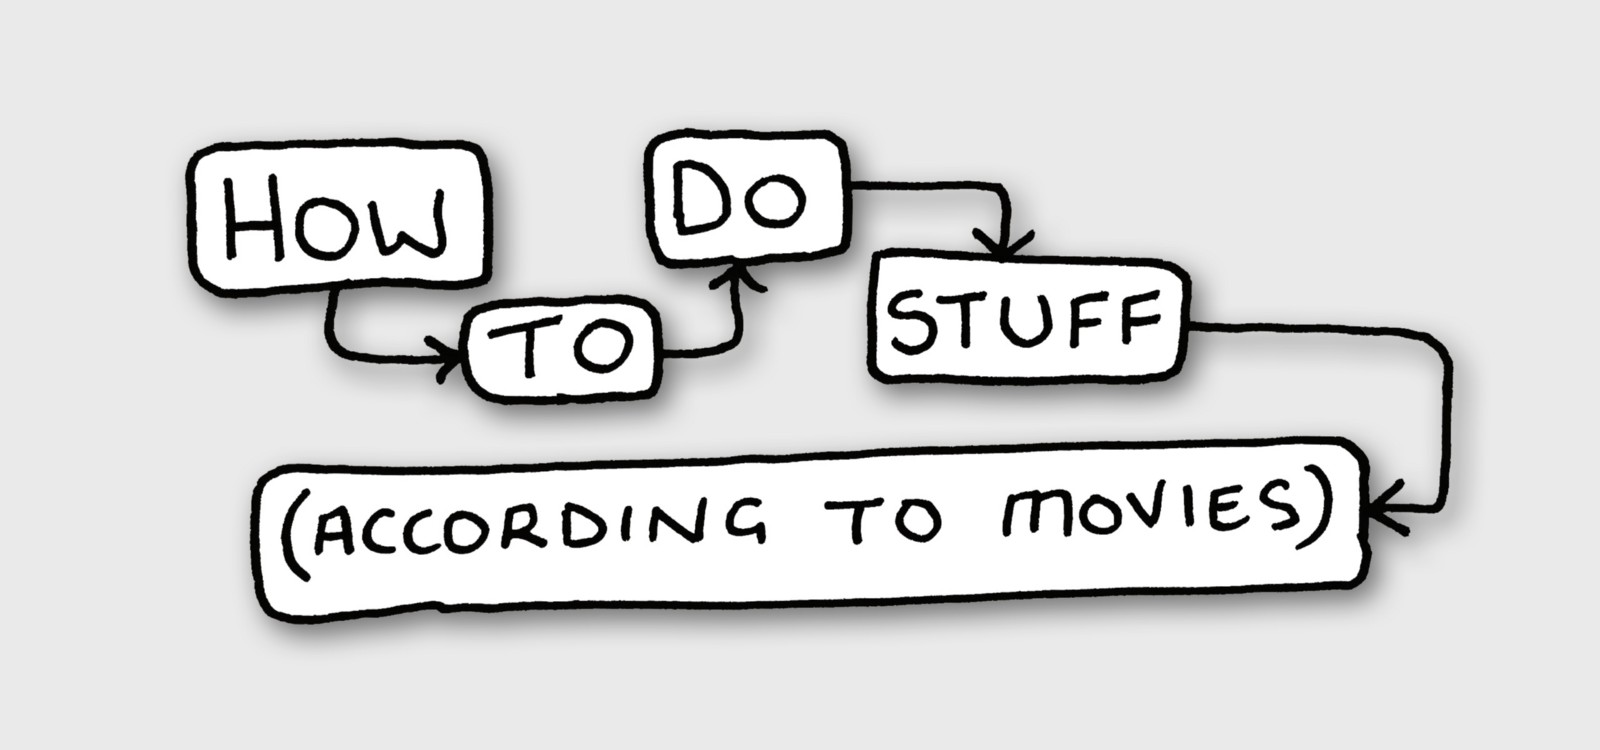 How to do stuff 31